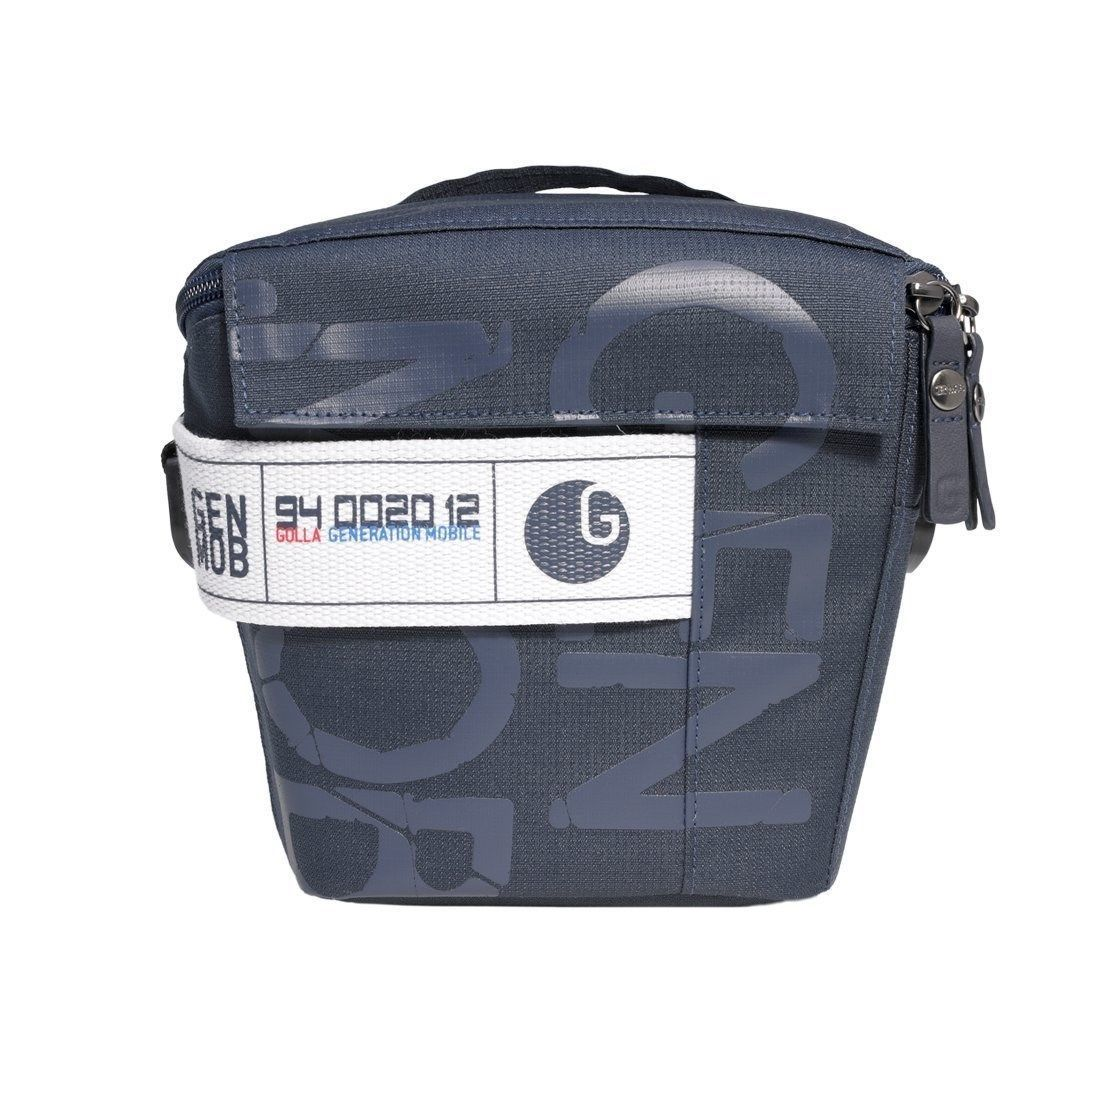 Primary image for GOLLA Camera Bag Pepper m G1271 with Shoulder Strap (Dark Blue)